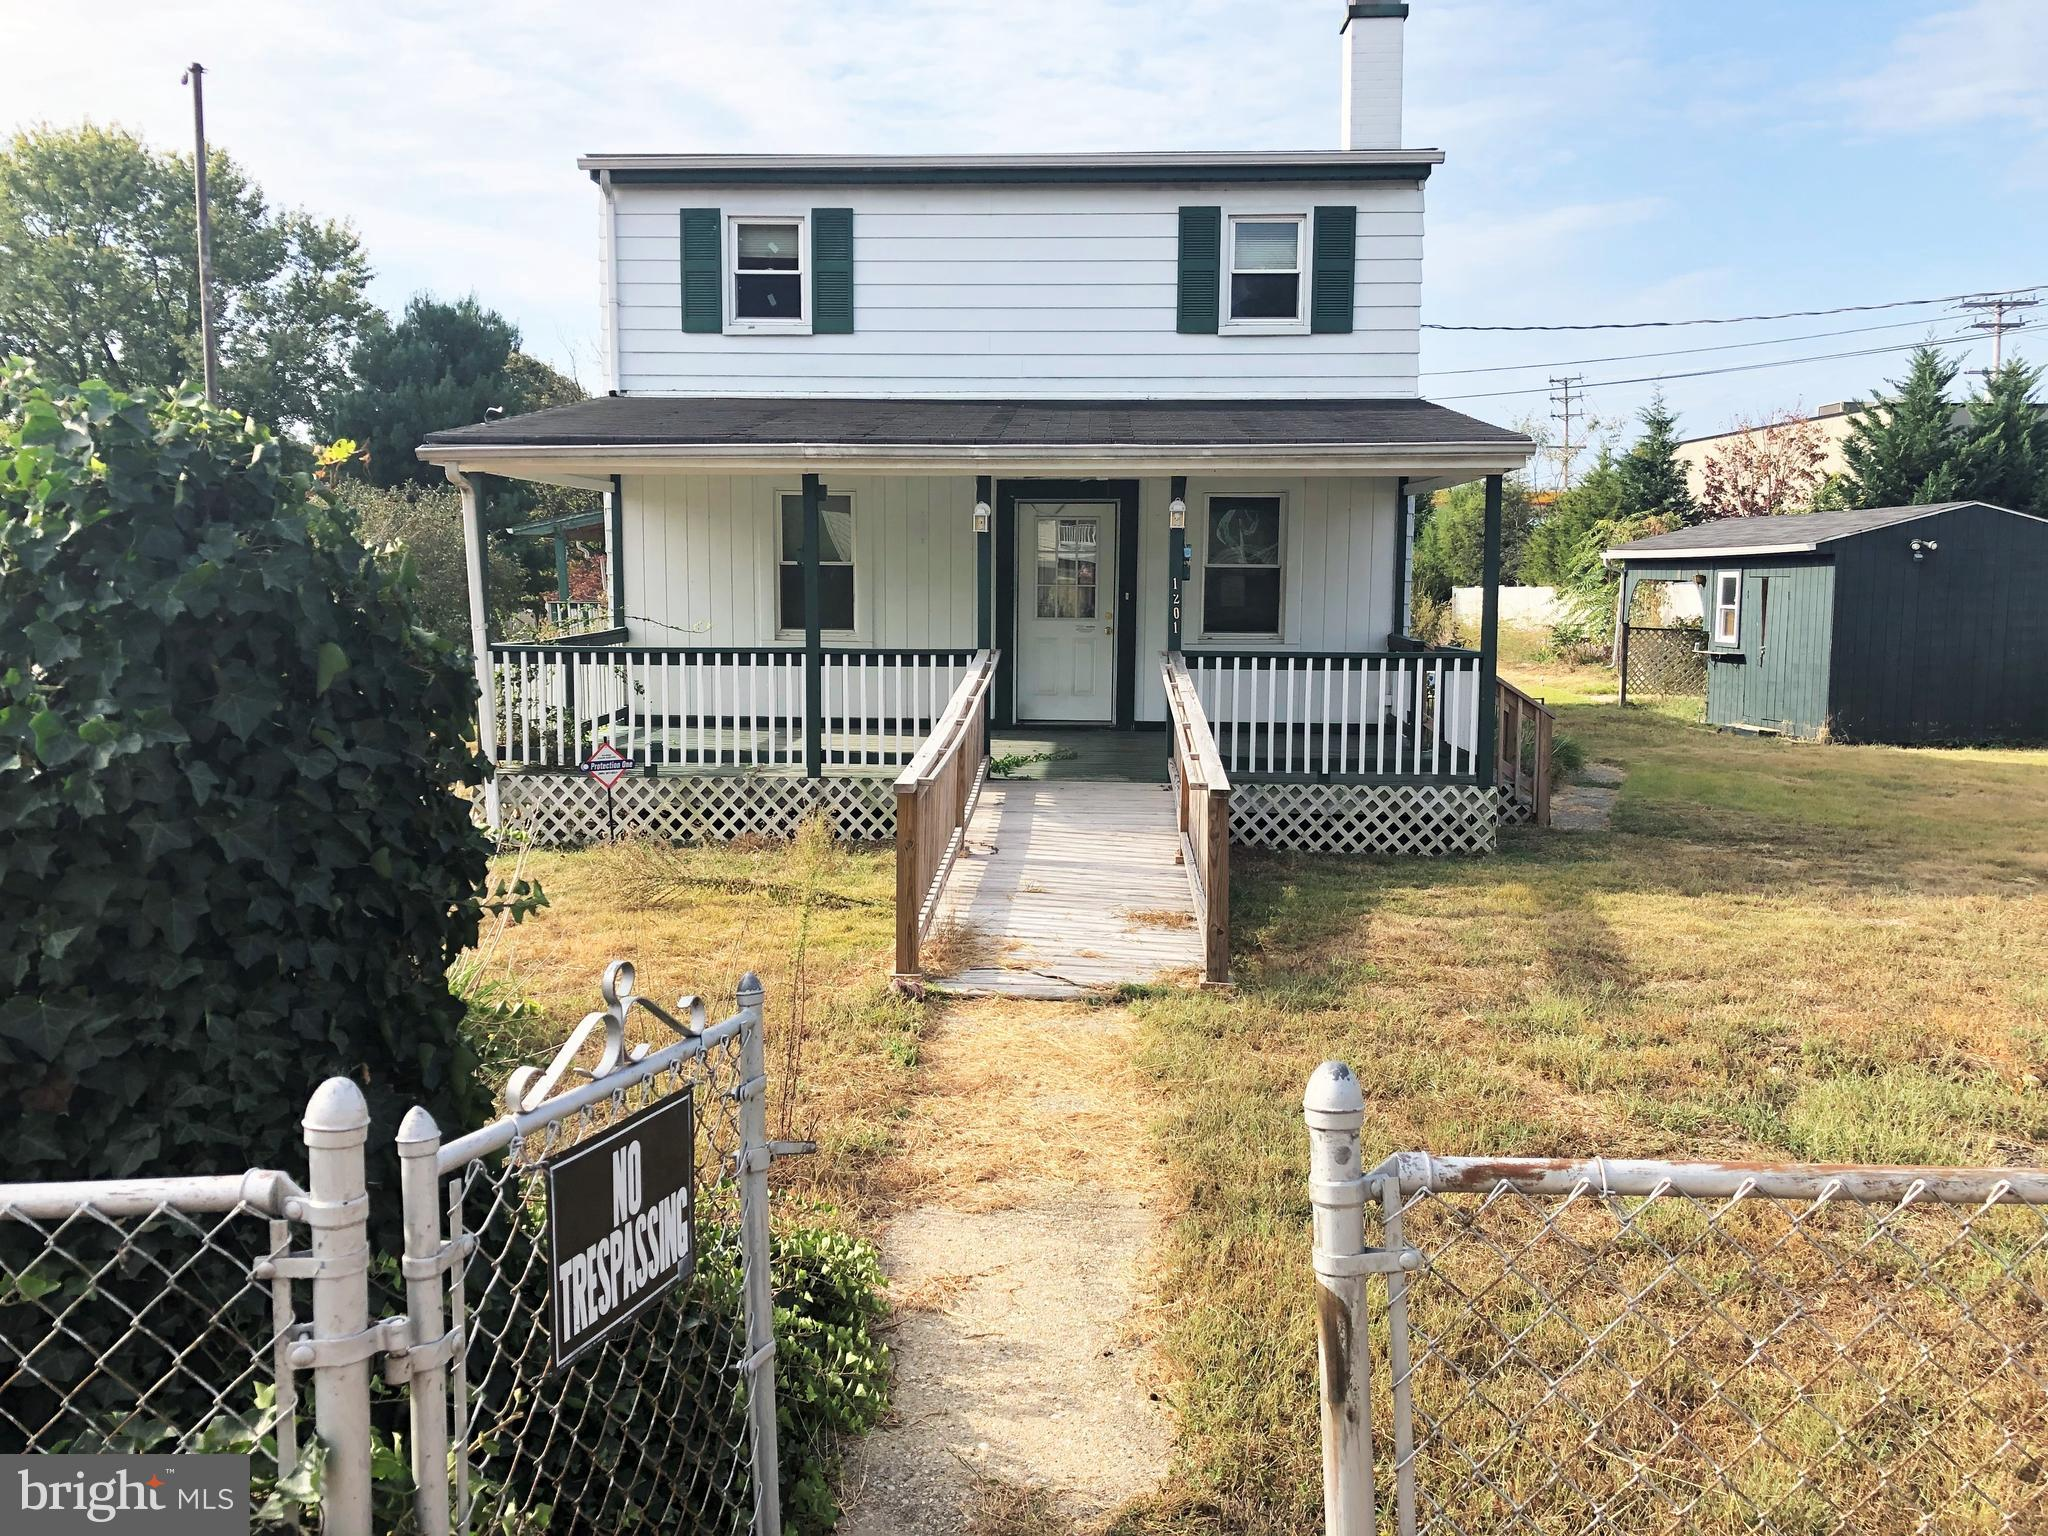 This is a Fannie Mae HECM/Reverse Mortgage Foreclosure Property.  Fantastic opportunity to own a sin